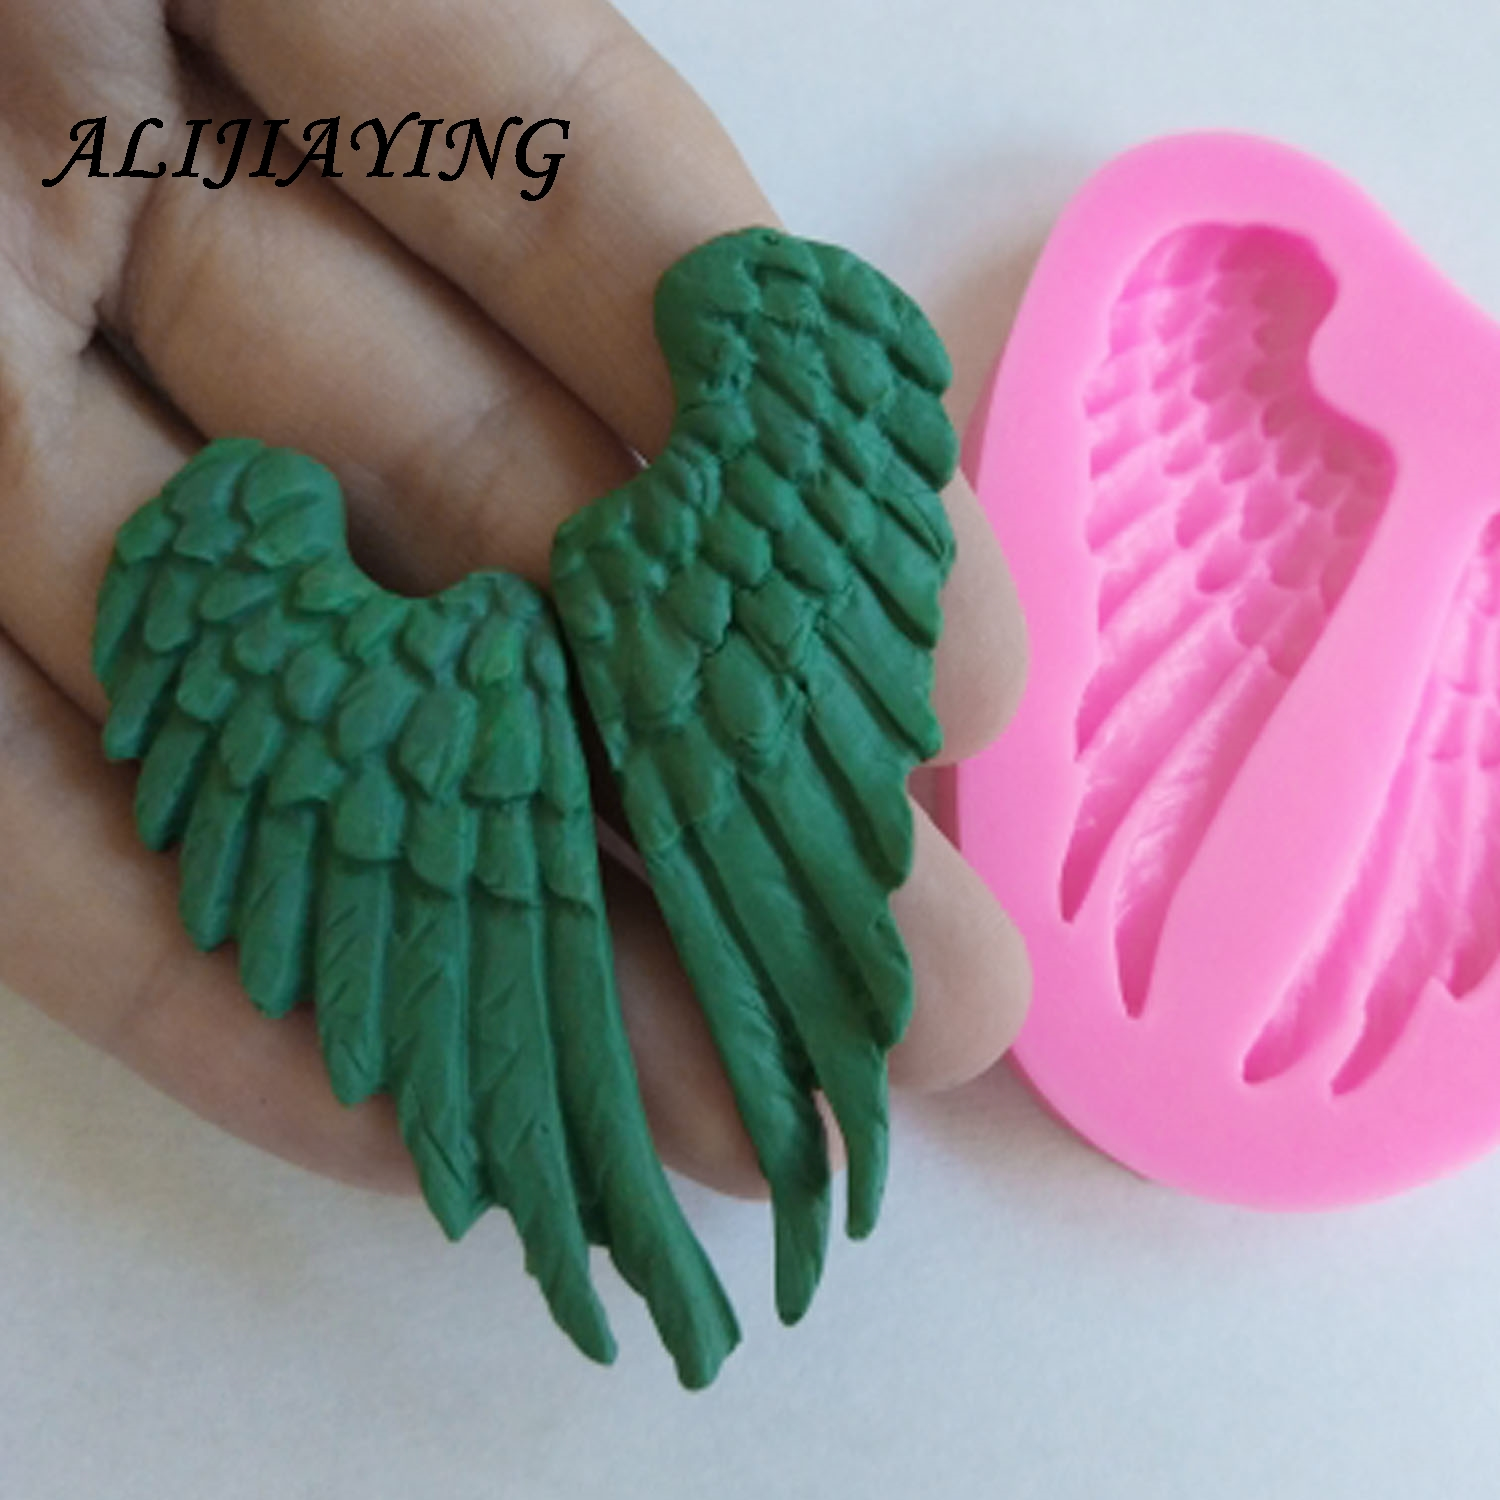 Feather Wings Silicone Cake Mold Fondant Sugar Craft Chocolate Decorating Tool